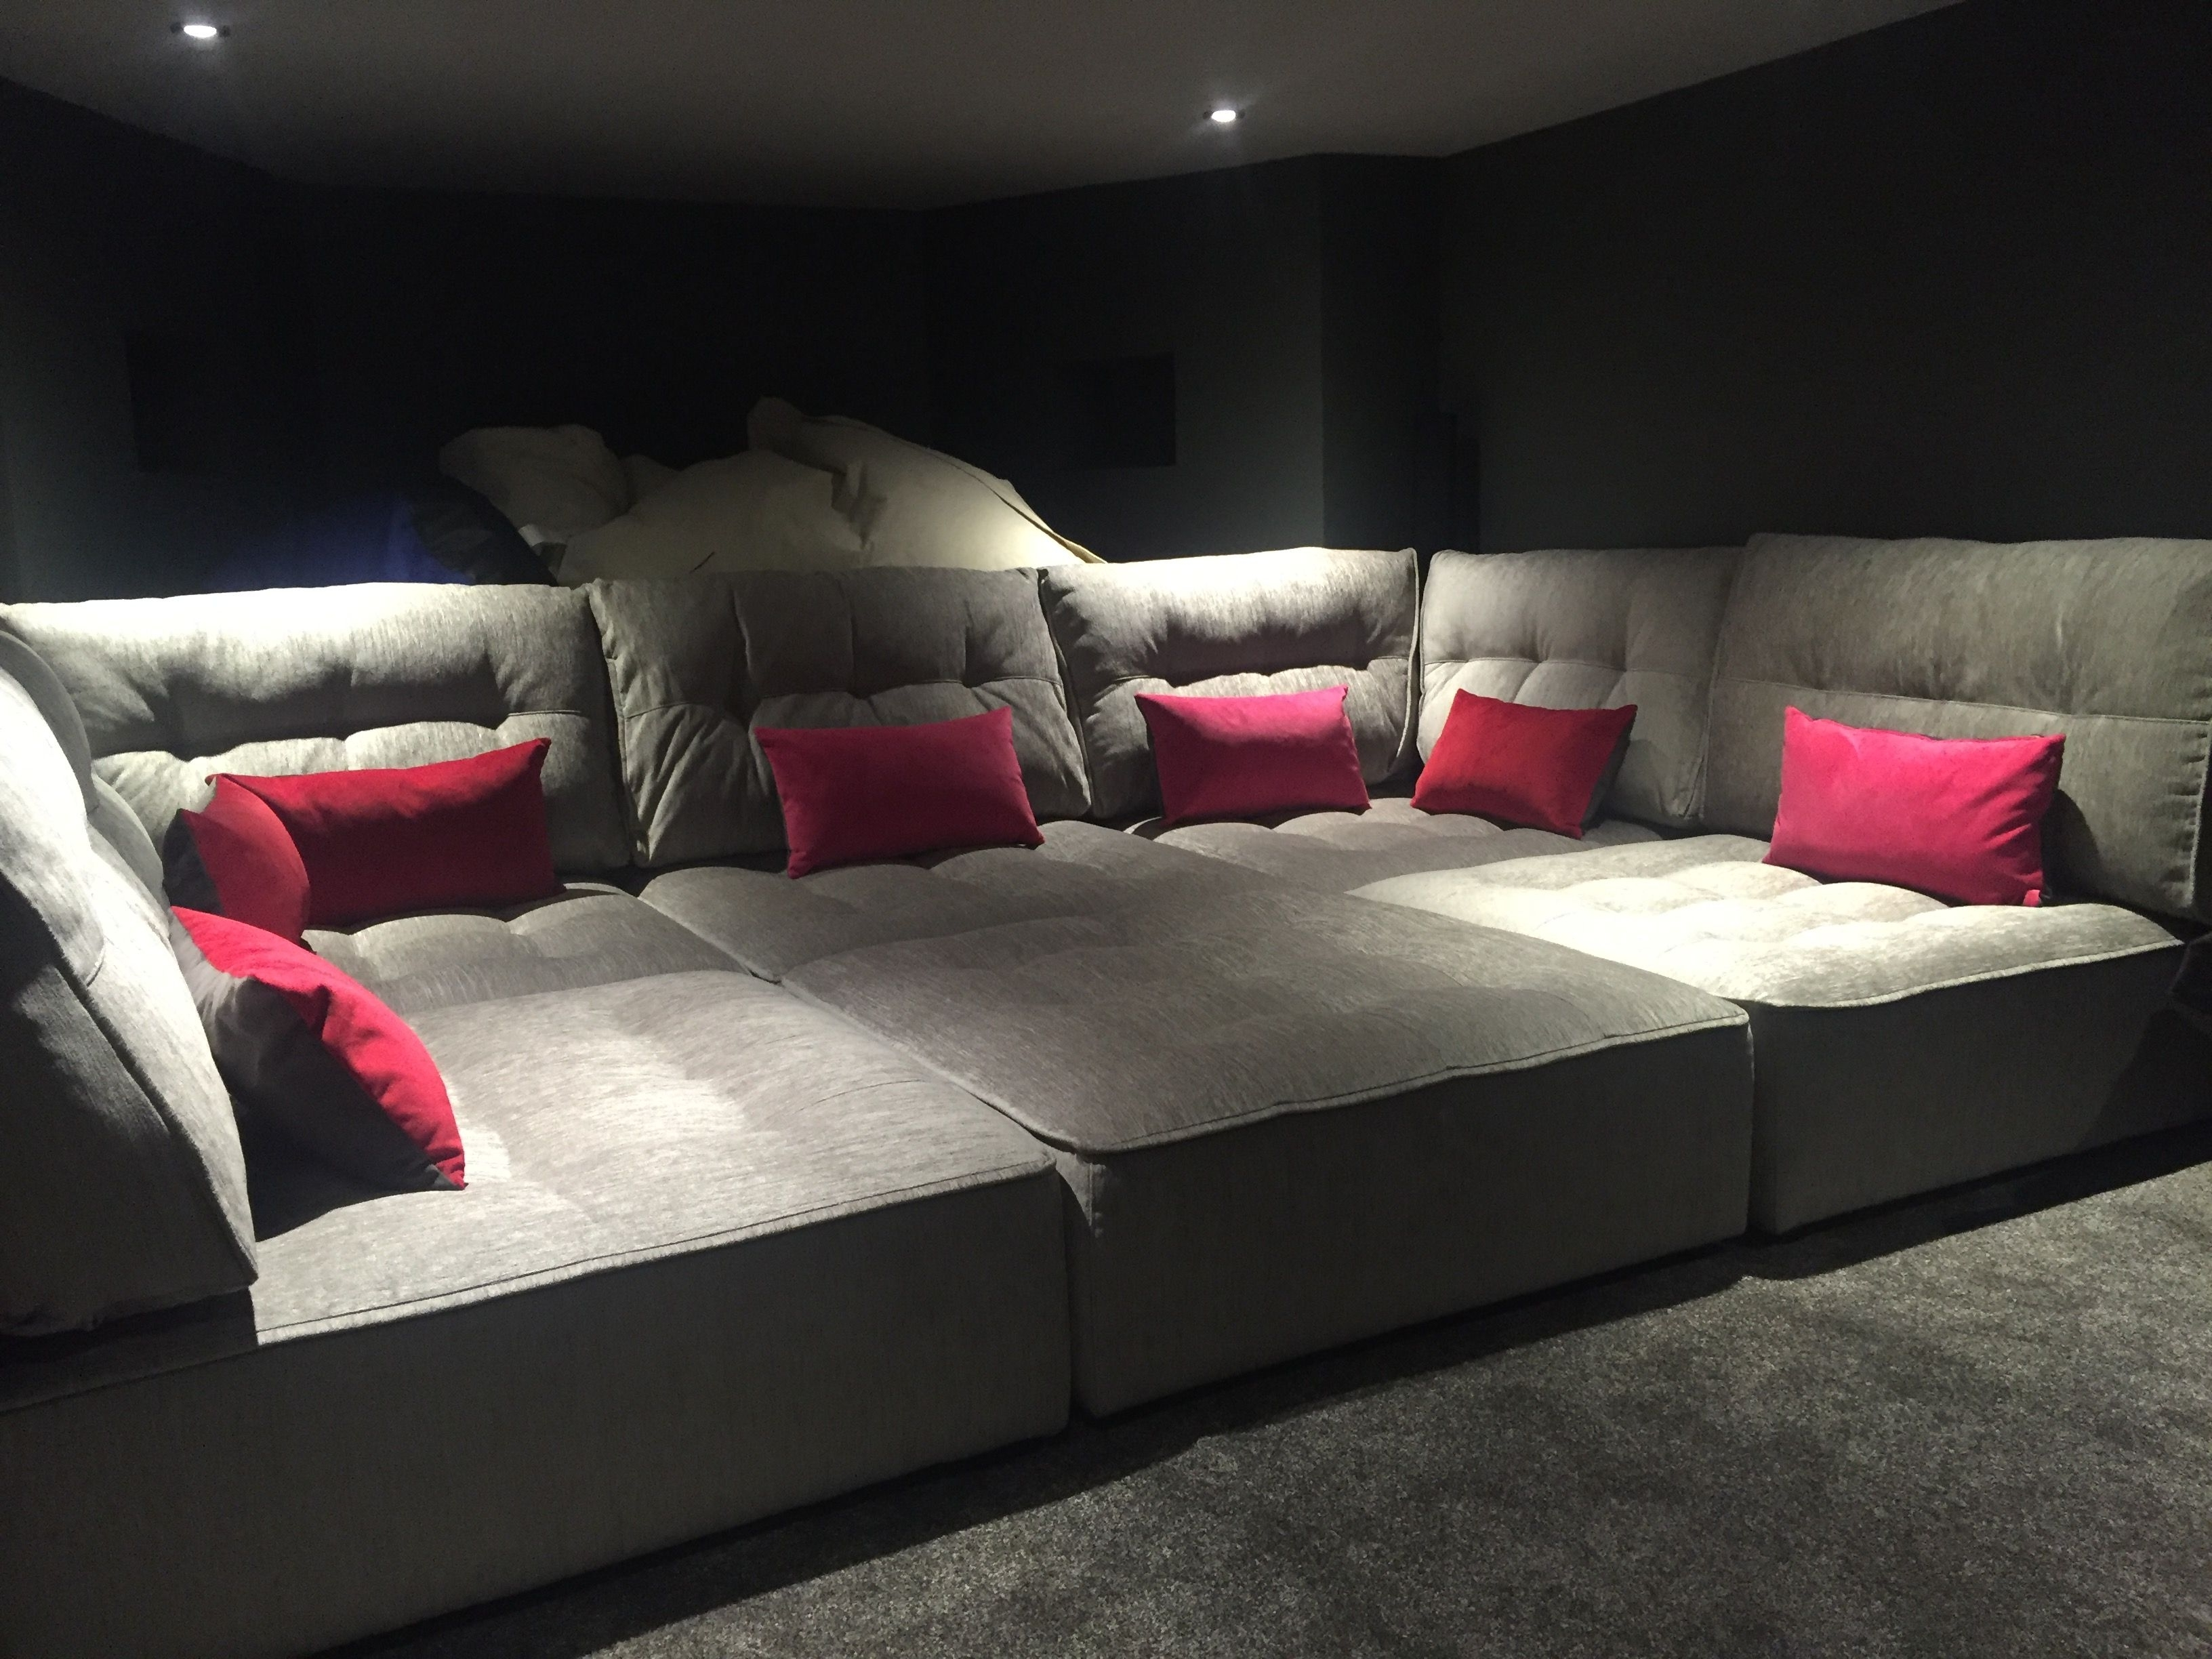 Media Room Sectional Sofas In Trendy Tapas In A Basement Media Room – Perfect For The Family To Chill (View 15 of 20)